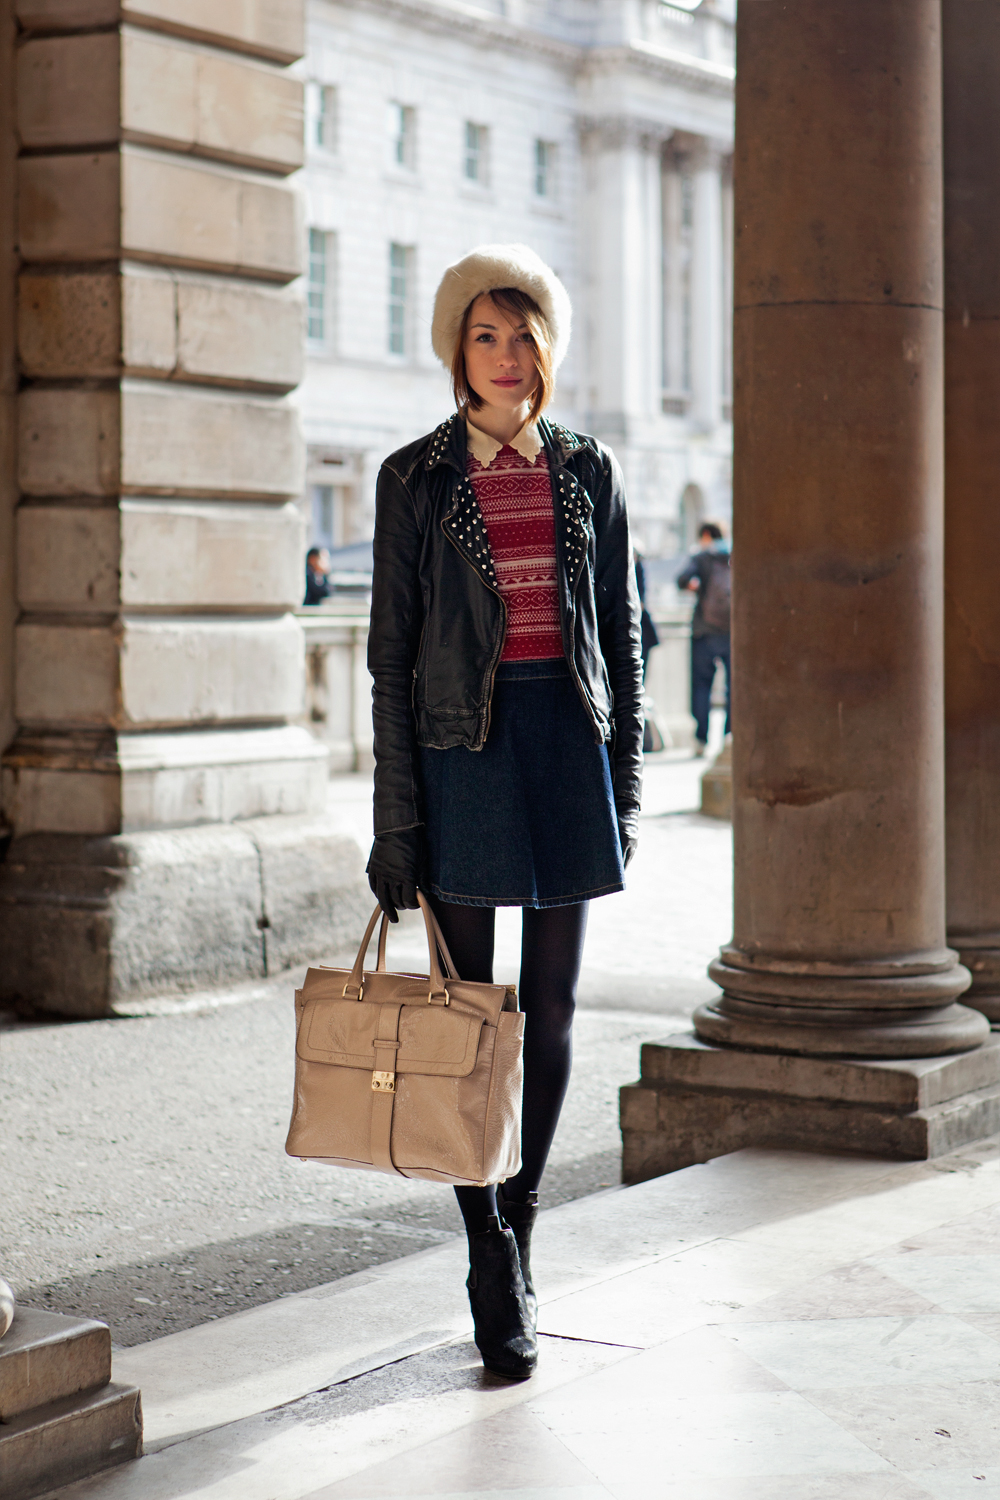 How Does London Street Style Look Edgy Sophisticated Loose Vintage Urban The Fashion Tag